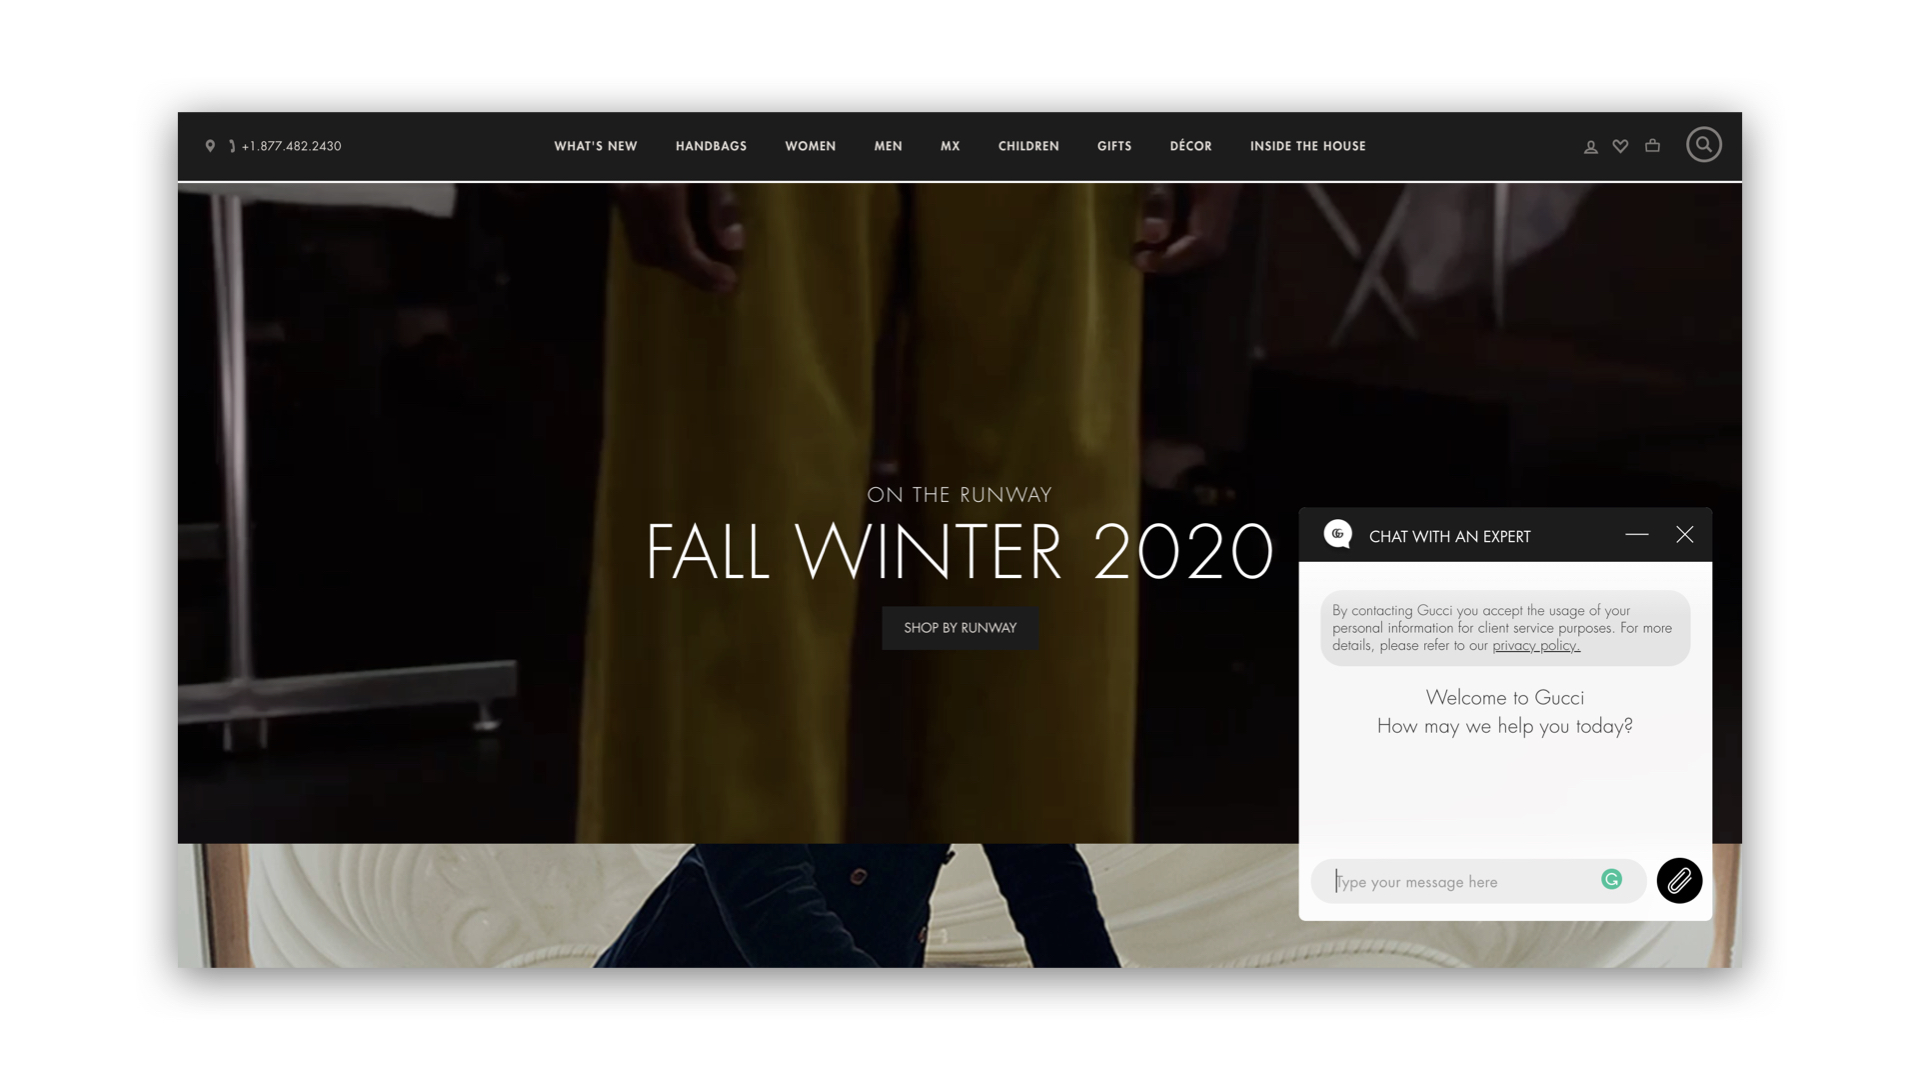 G & Co. is a luxury marketing agency: Optimizing for organic search is one of the most important things a brand can do online today